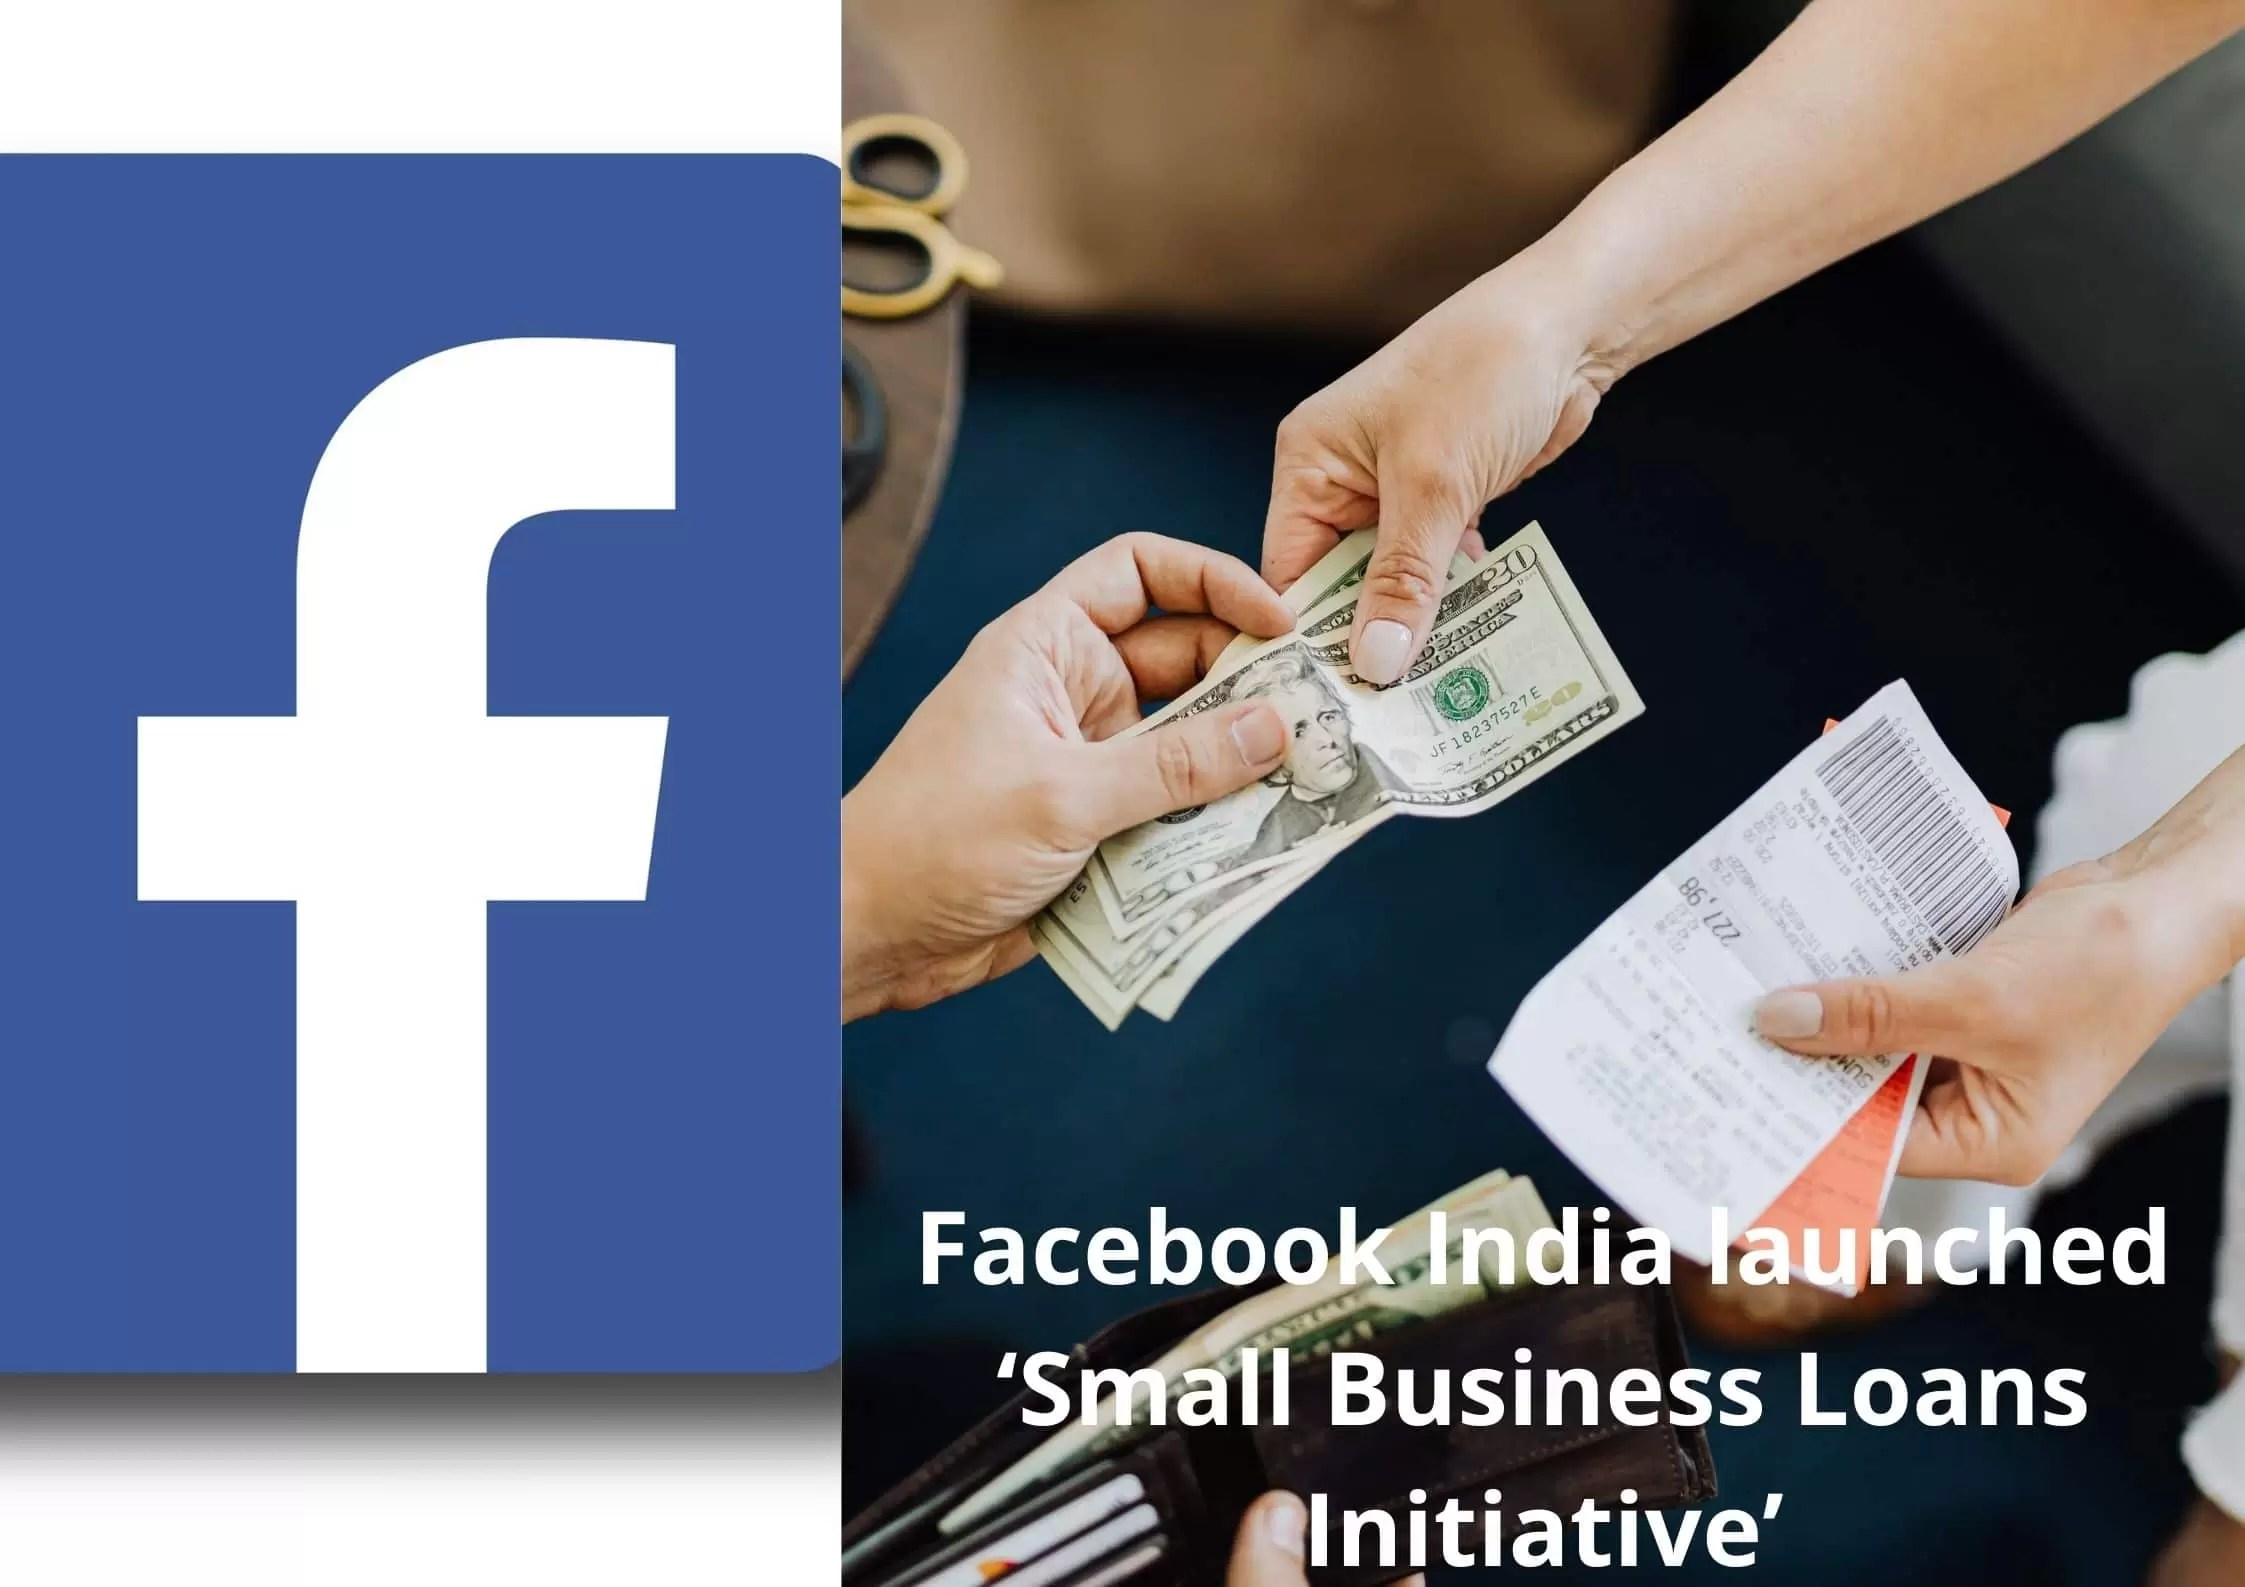 Facebook India launched 'Small Business Loans Initiative'